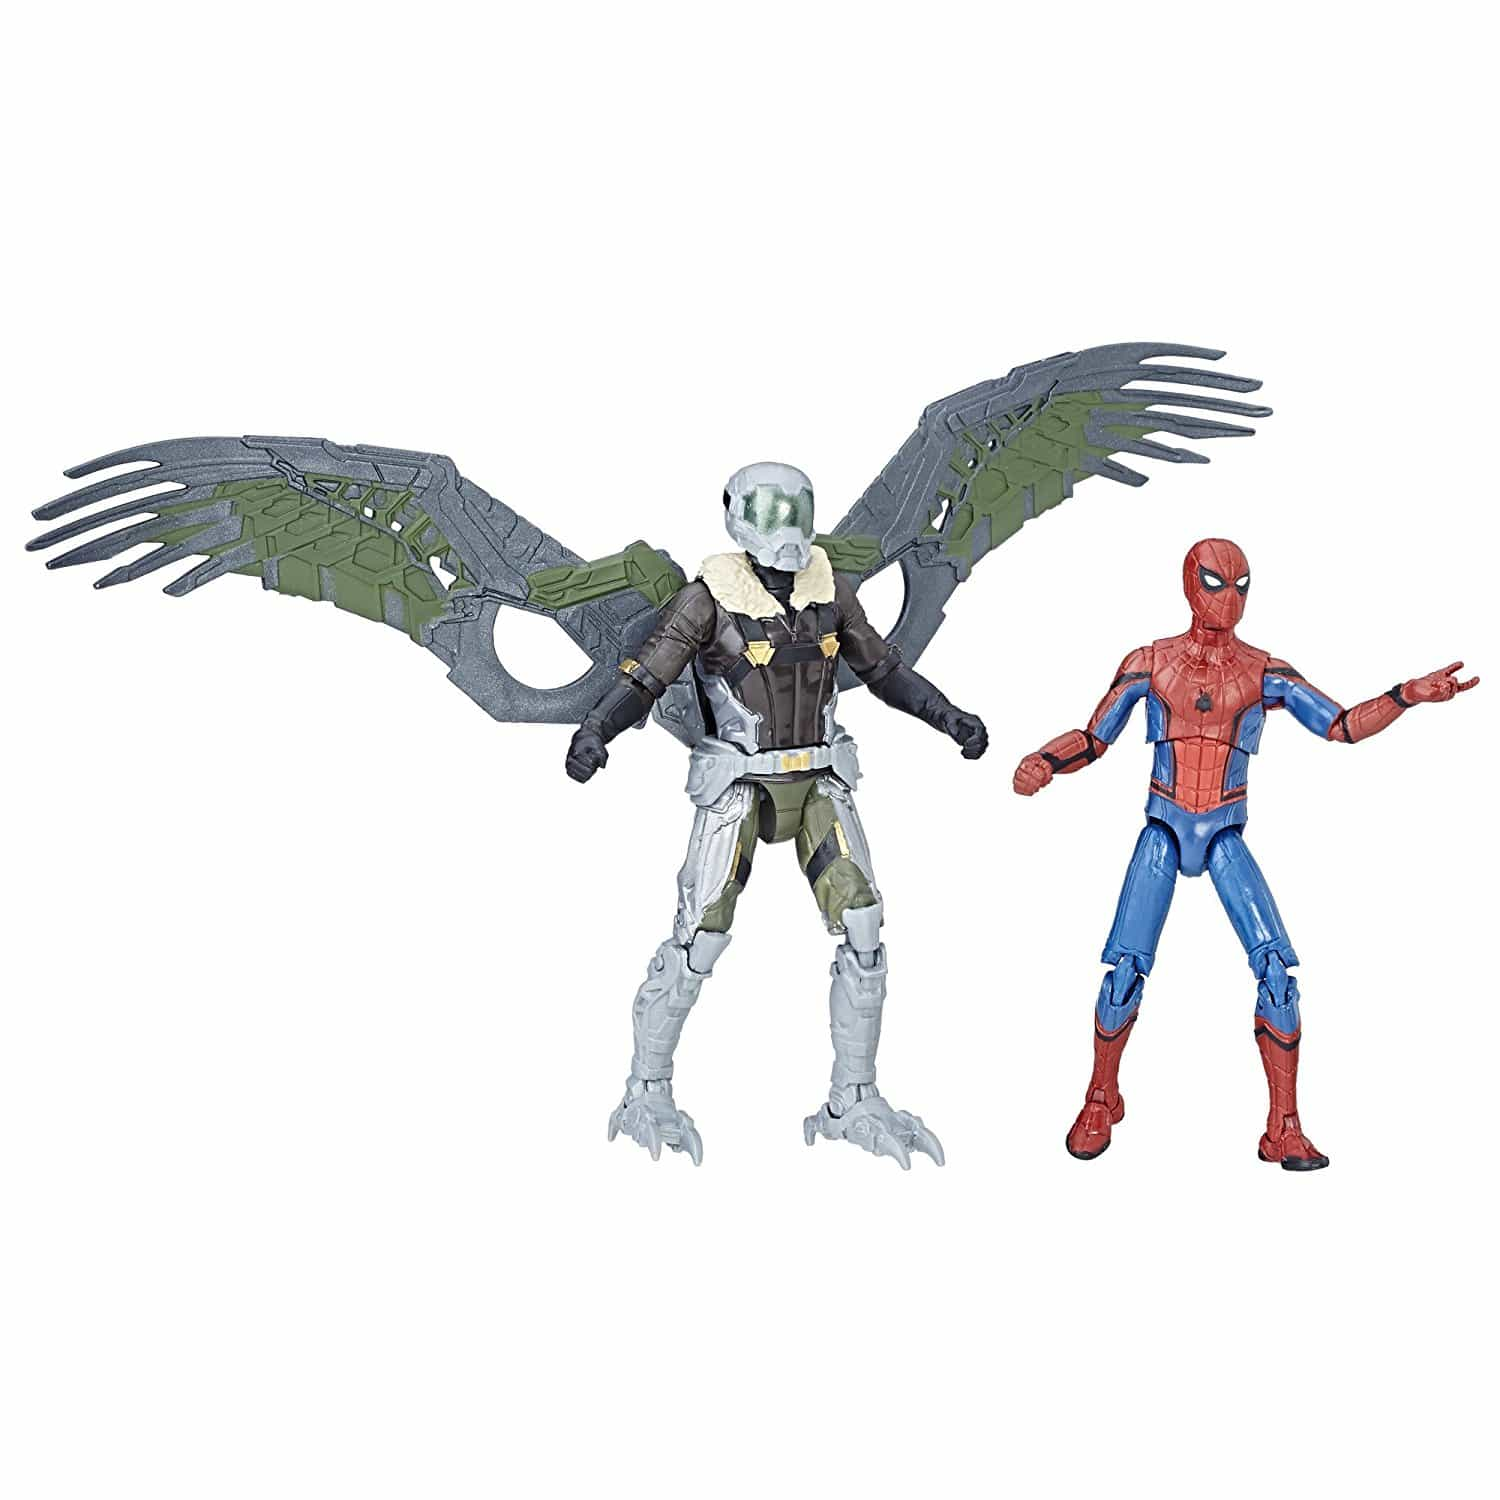 Spider-Man Homecoming Spider-Man - Vulture Action Figures